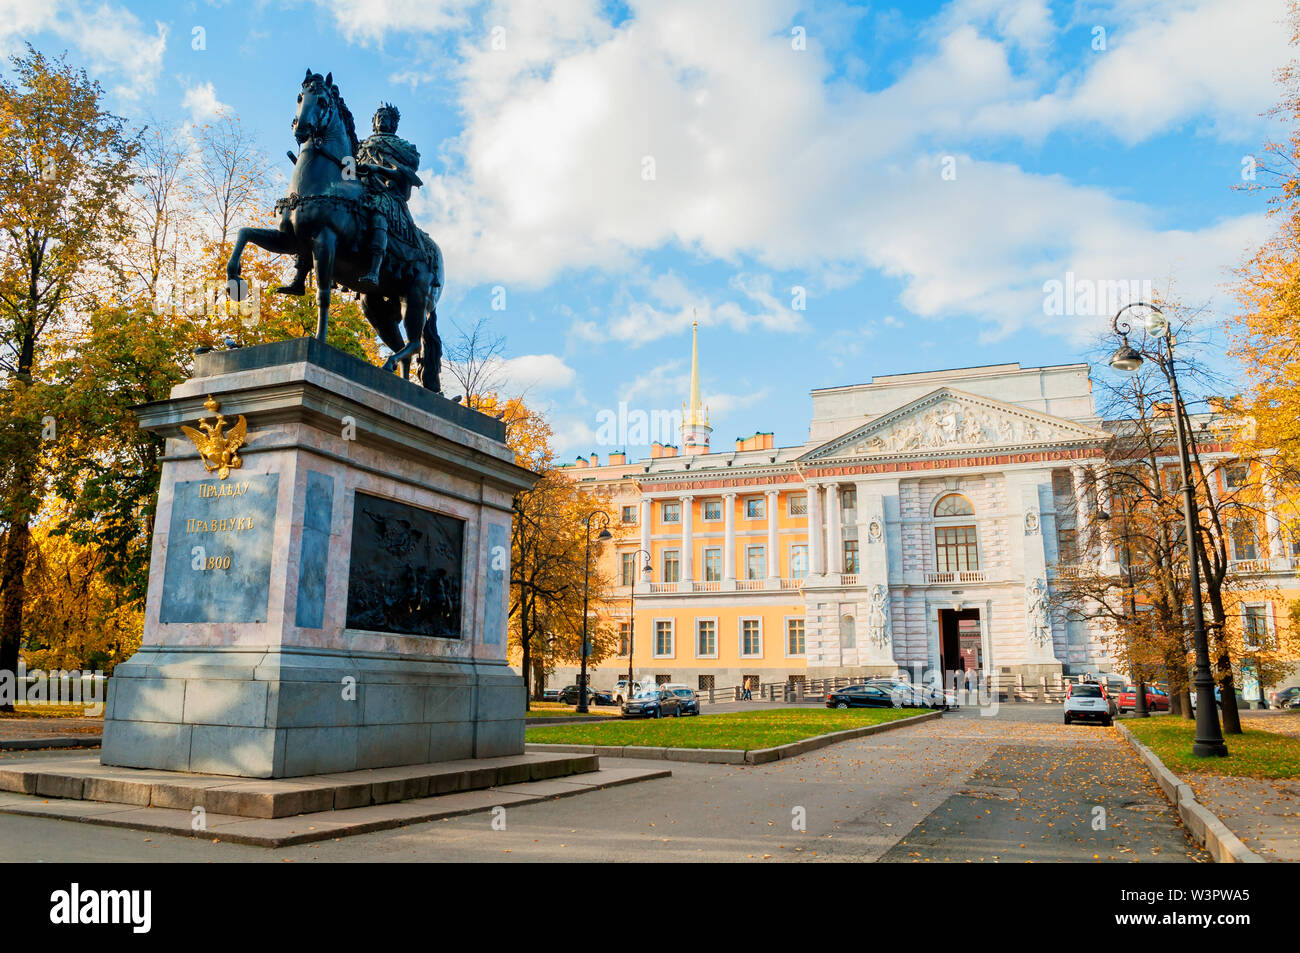 Saint Petersburg, Russia-October 3, 2016. Monument to Russian emperor Peter the Great near the Mikhailovsky or Engineer Castle in Saint Petersburg, Ru - Stock Image